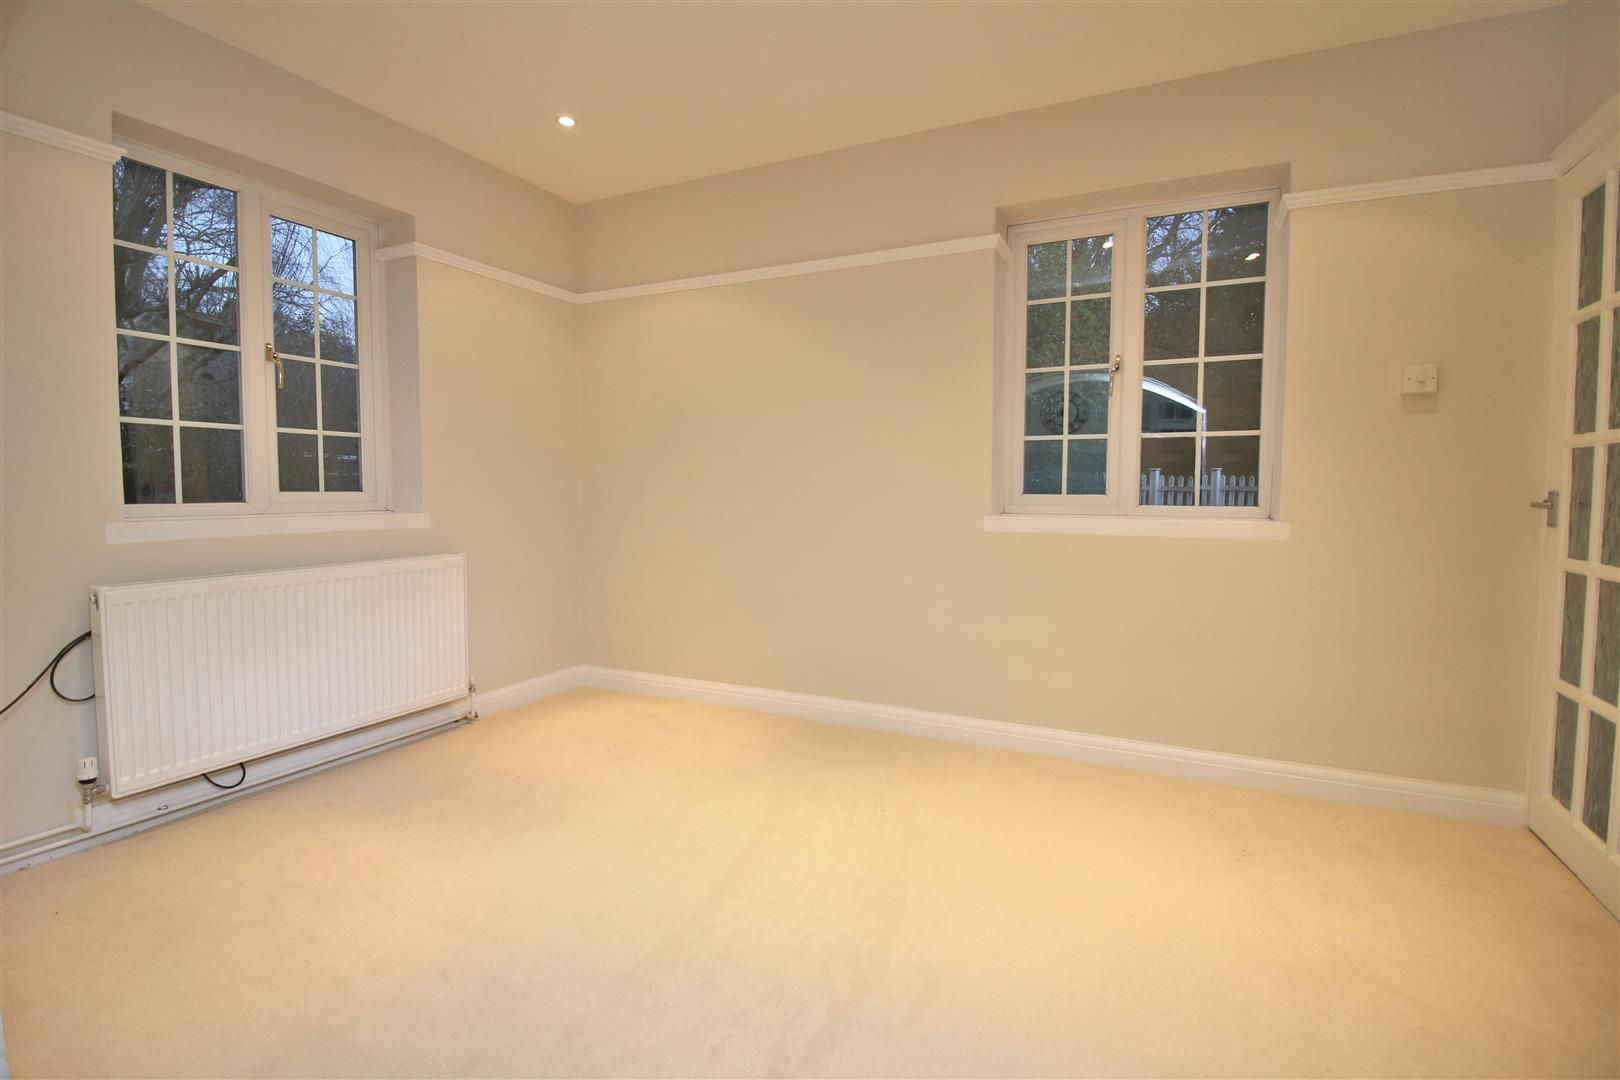 3 bed to rent in Church Lane - (Property Image 3)